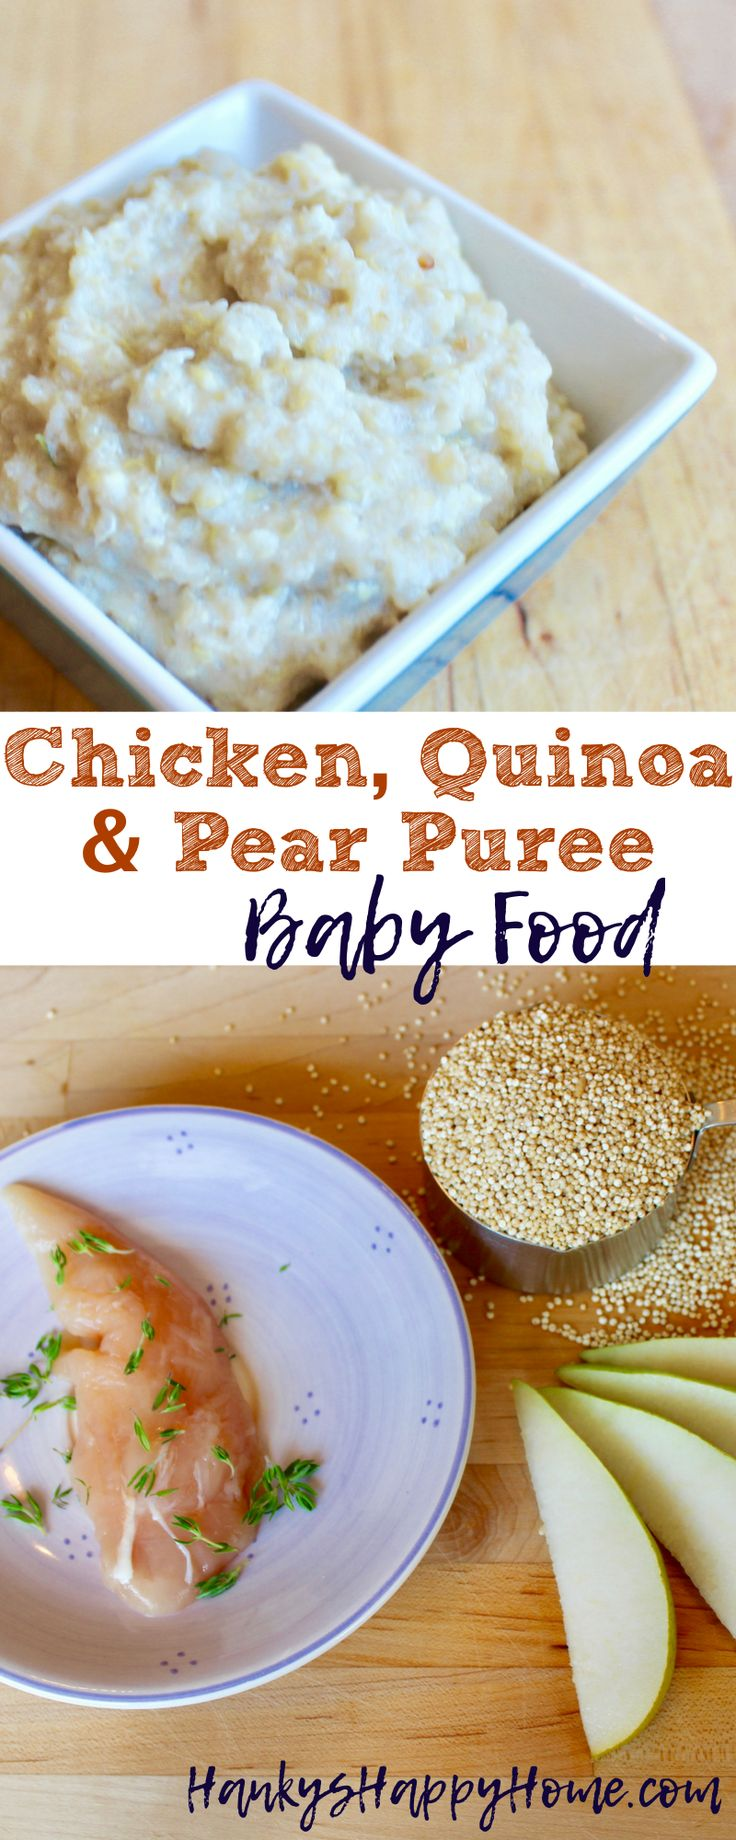 This Chicken, Quinoa & Pear Baby Food Puree is easy to make and packed with protein, iron, and fiber. Perfect lunch or dinner for baby.